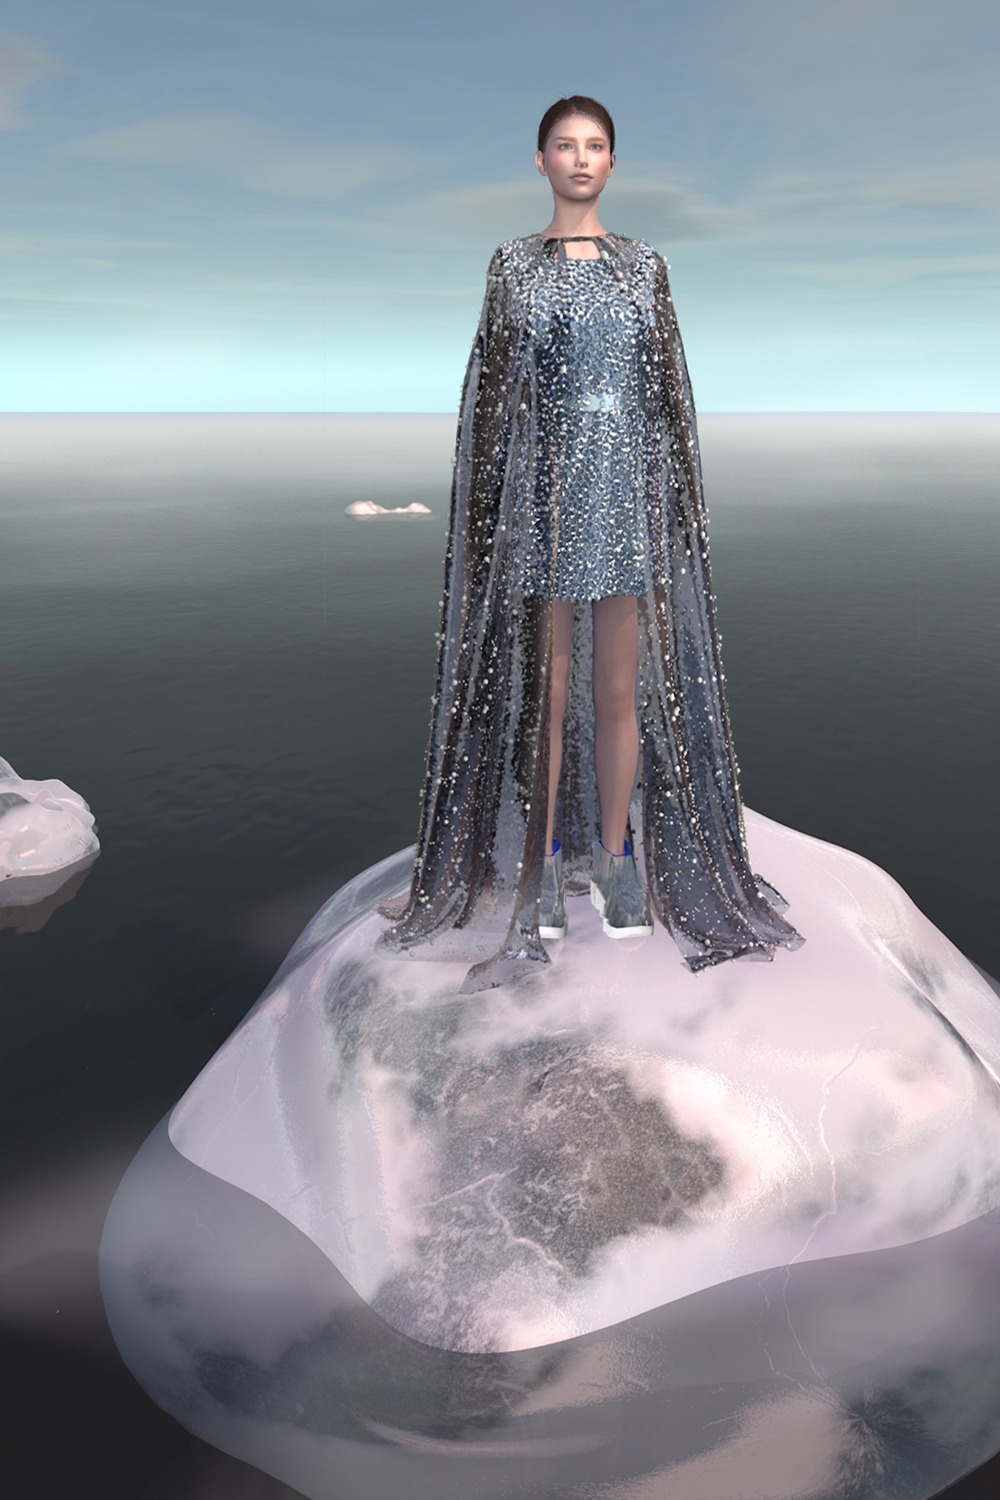 Frosty Cape and Dress